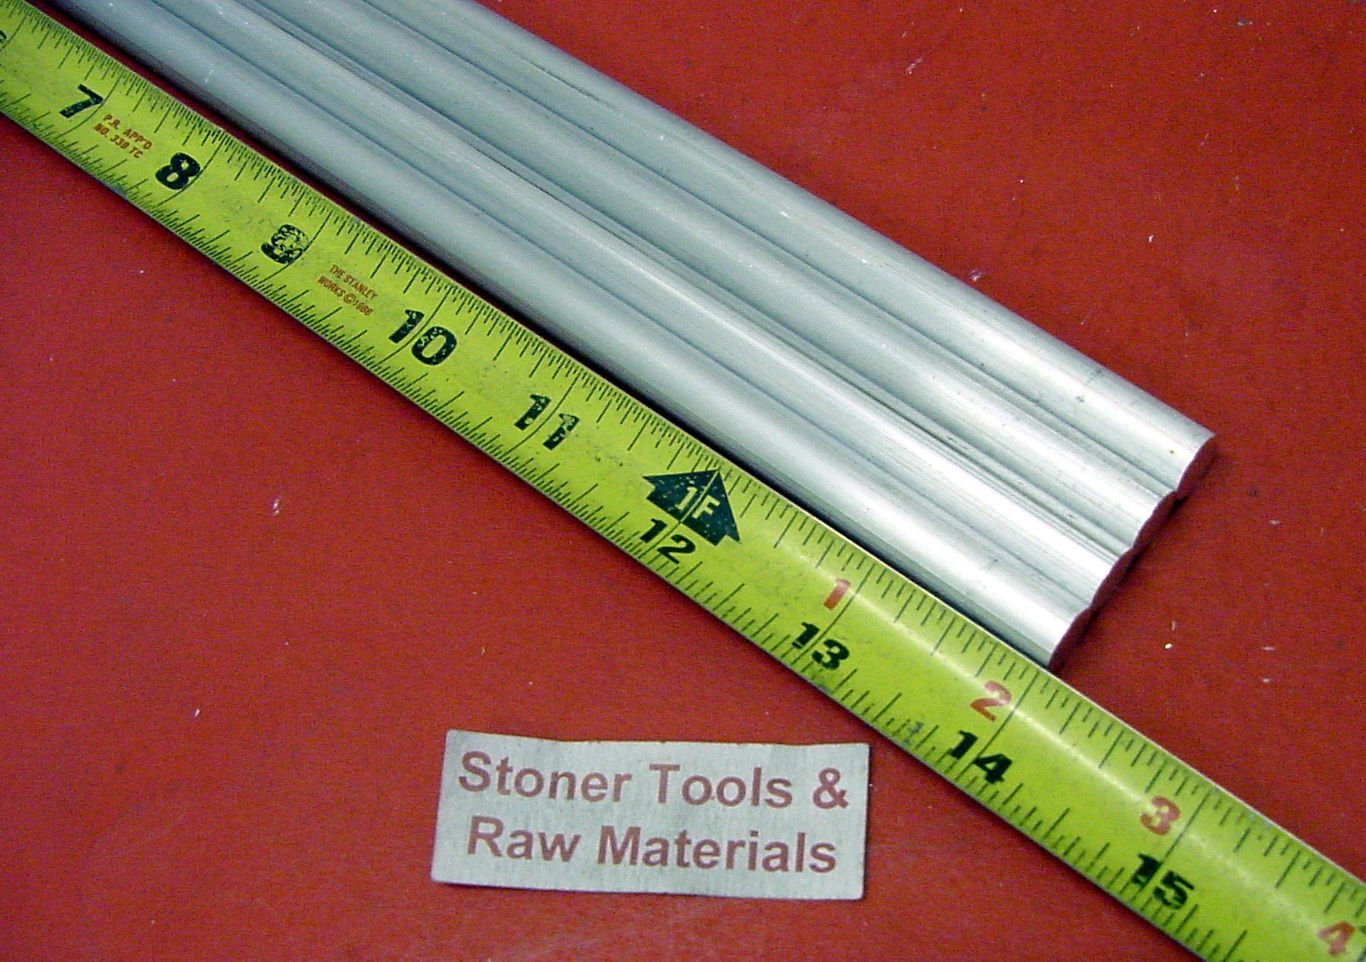 """4 Pieces 1/2"""" Aluminum 6061 Round Rod 14"""" Long +.07""""/-0 Solid T6511 Extruded Lathe Bar Stock 81A0zmgN5mL"""